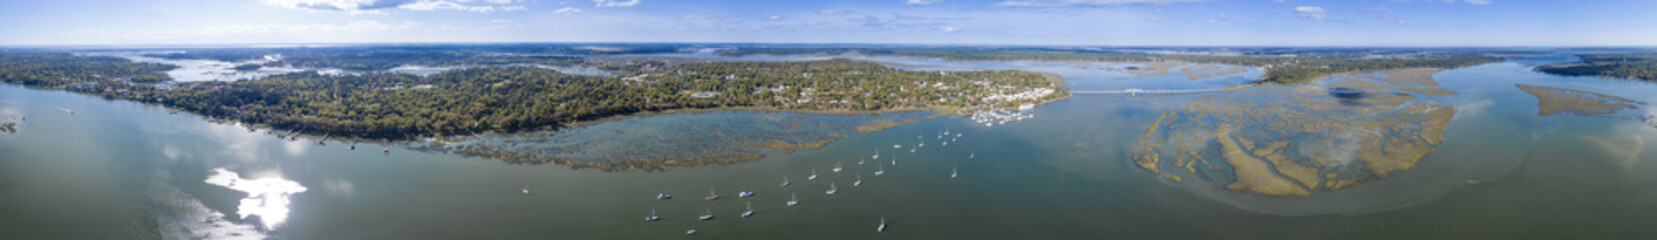 360 degree seamless panorama of Beaufort, South Carolina and surrounding islands.